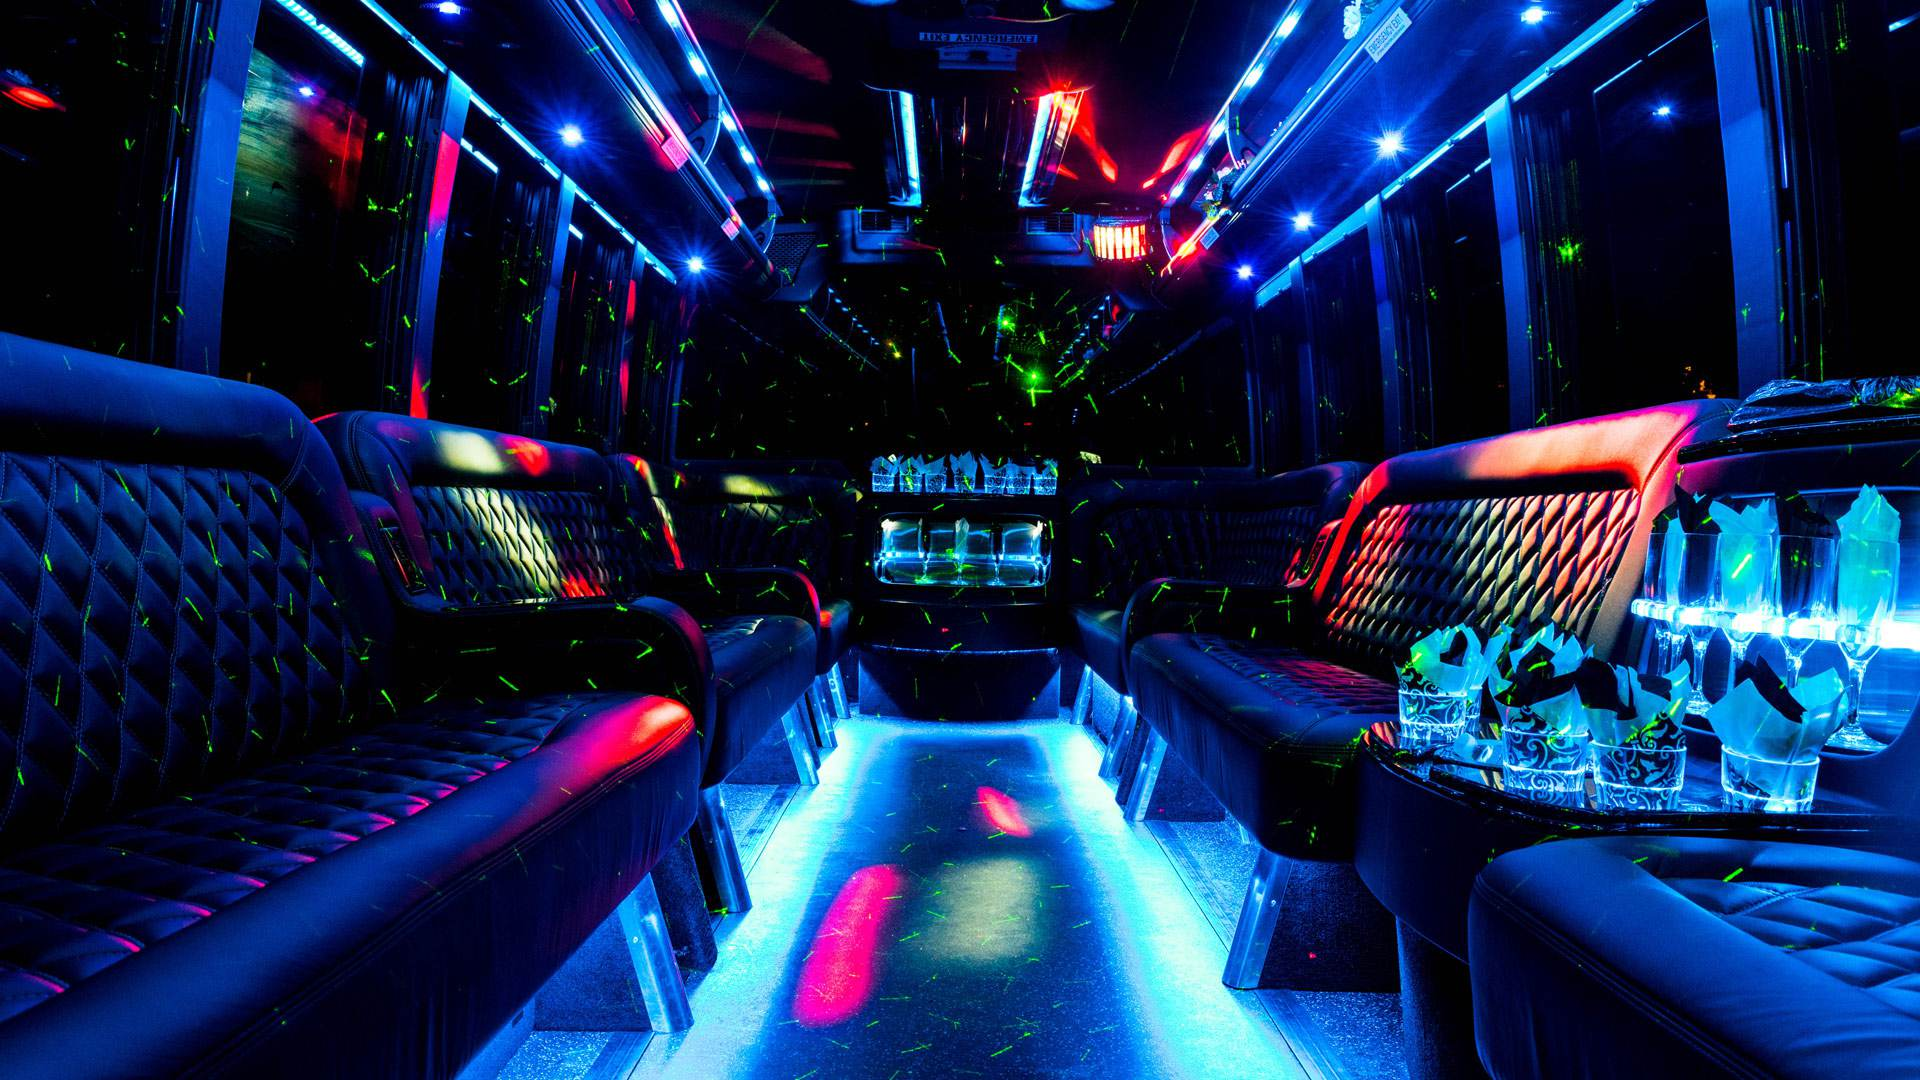 Top Dog Limo Bus Fleet All New Party Buses In San Diego